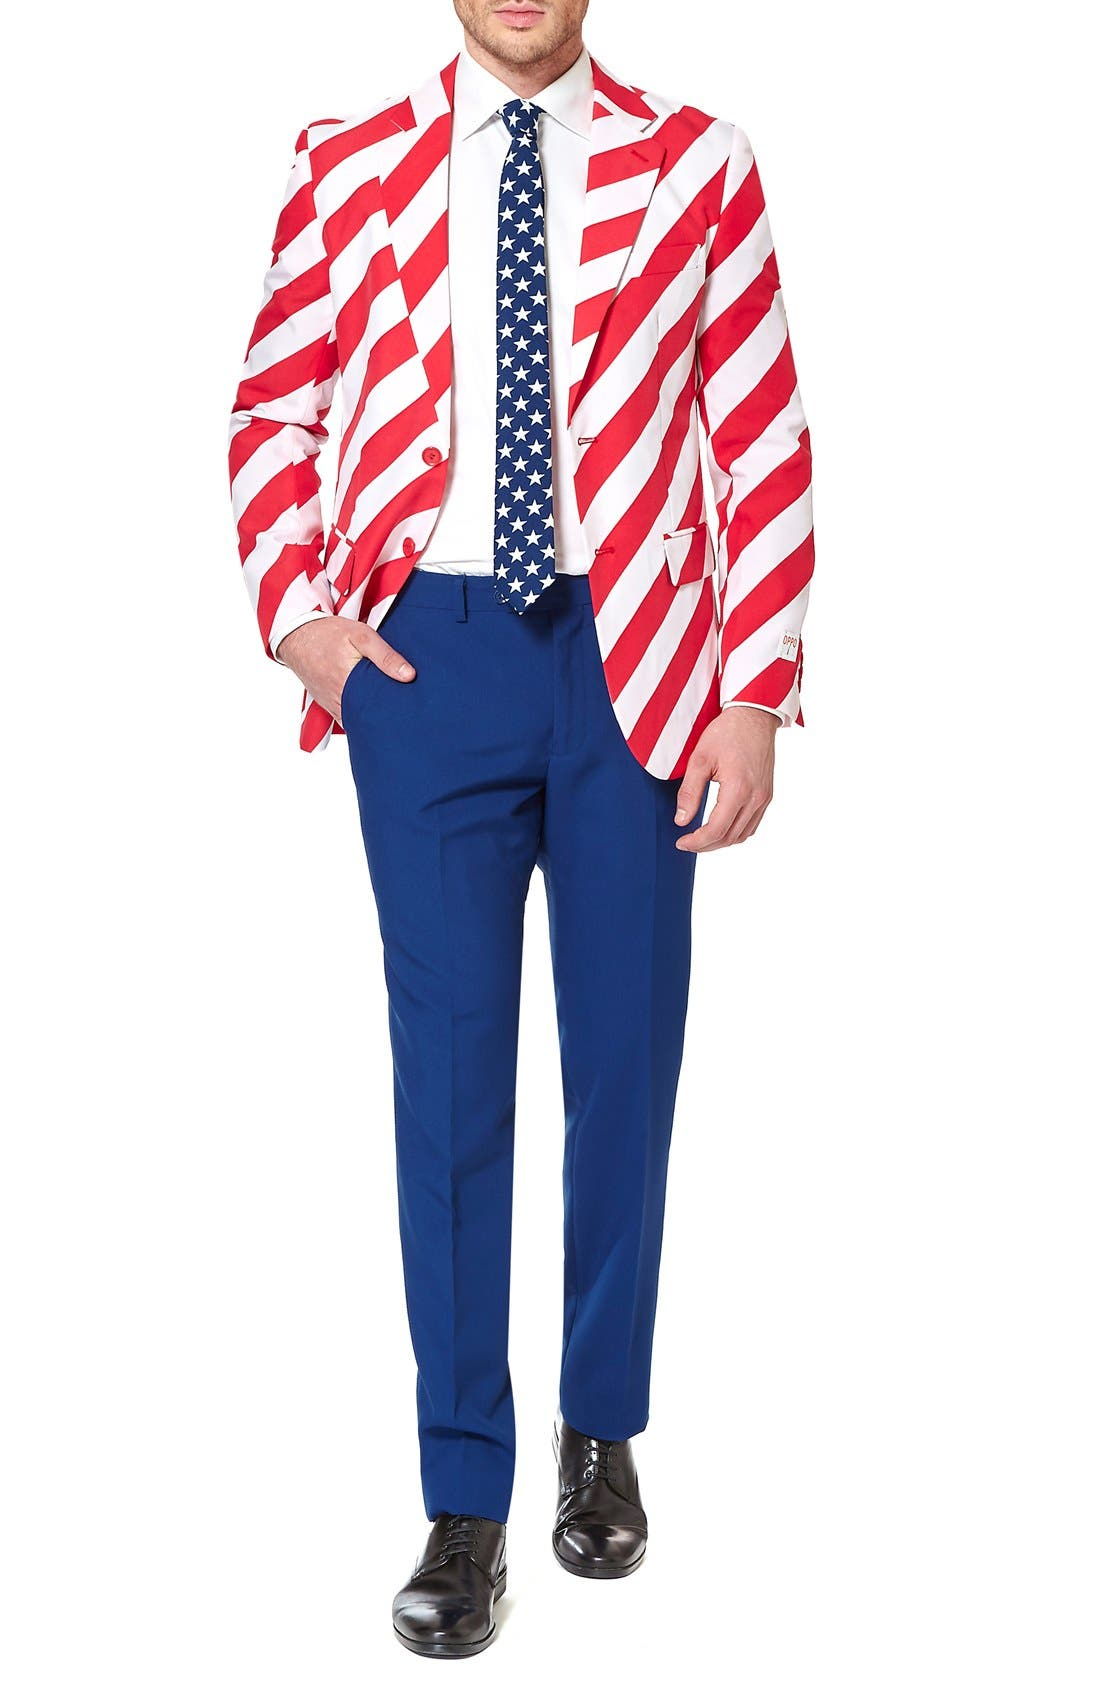 'United Stripes' Trim Fit Suit with Tie,                             Main thumbnail 1, color,                             Red/ Blue/ White